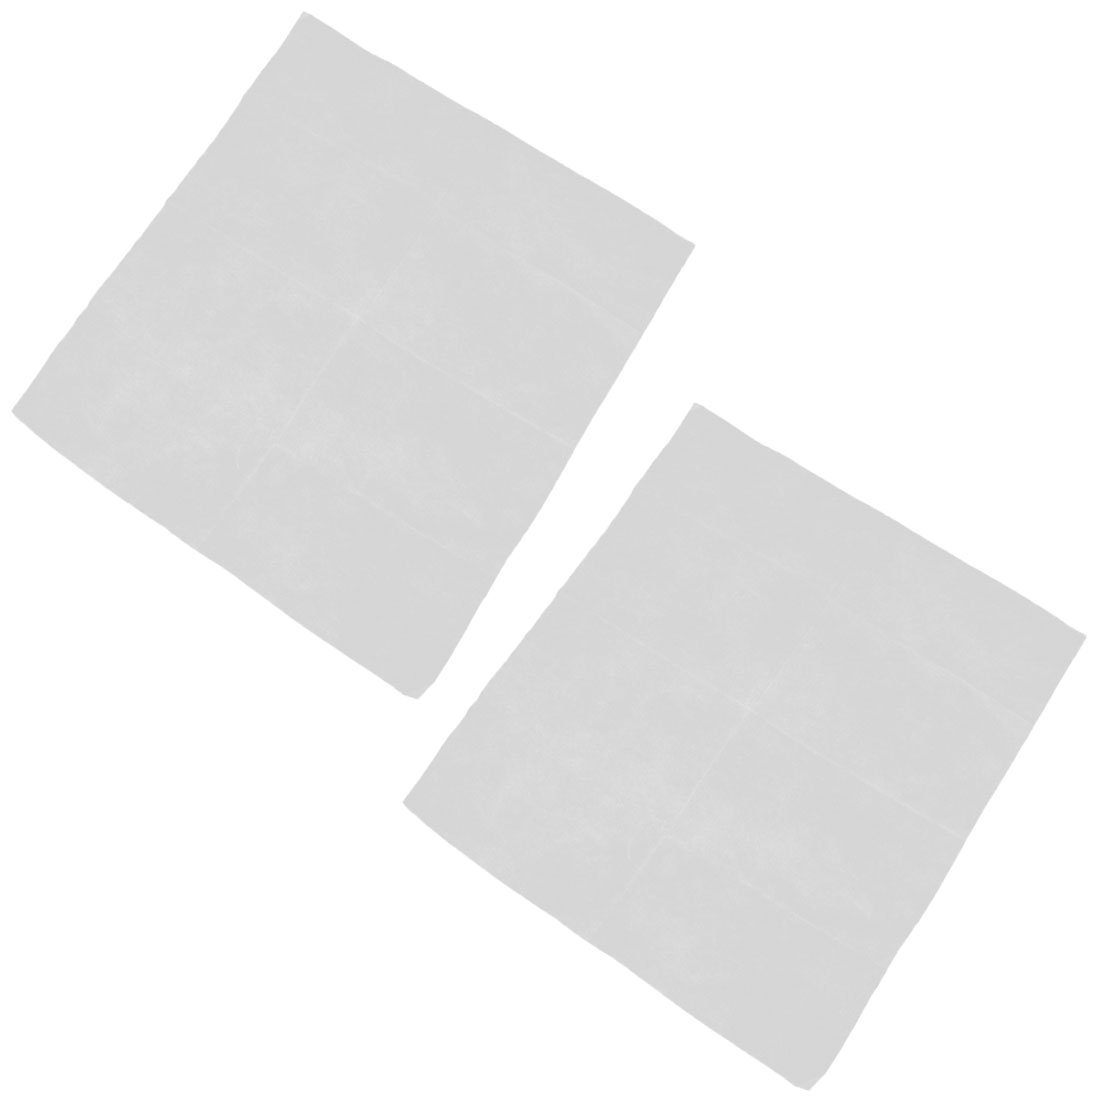 Household Bedroom Fibre Self-adhesive Replacement Air Conditioner Filter 2pcs